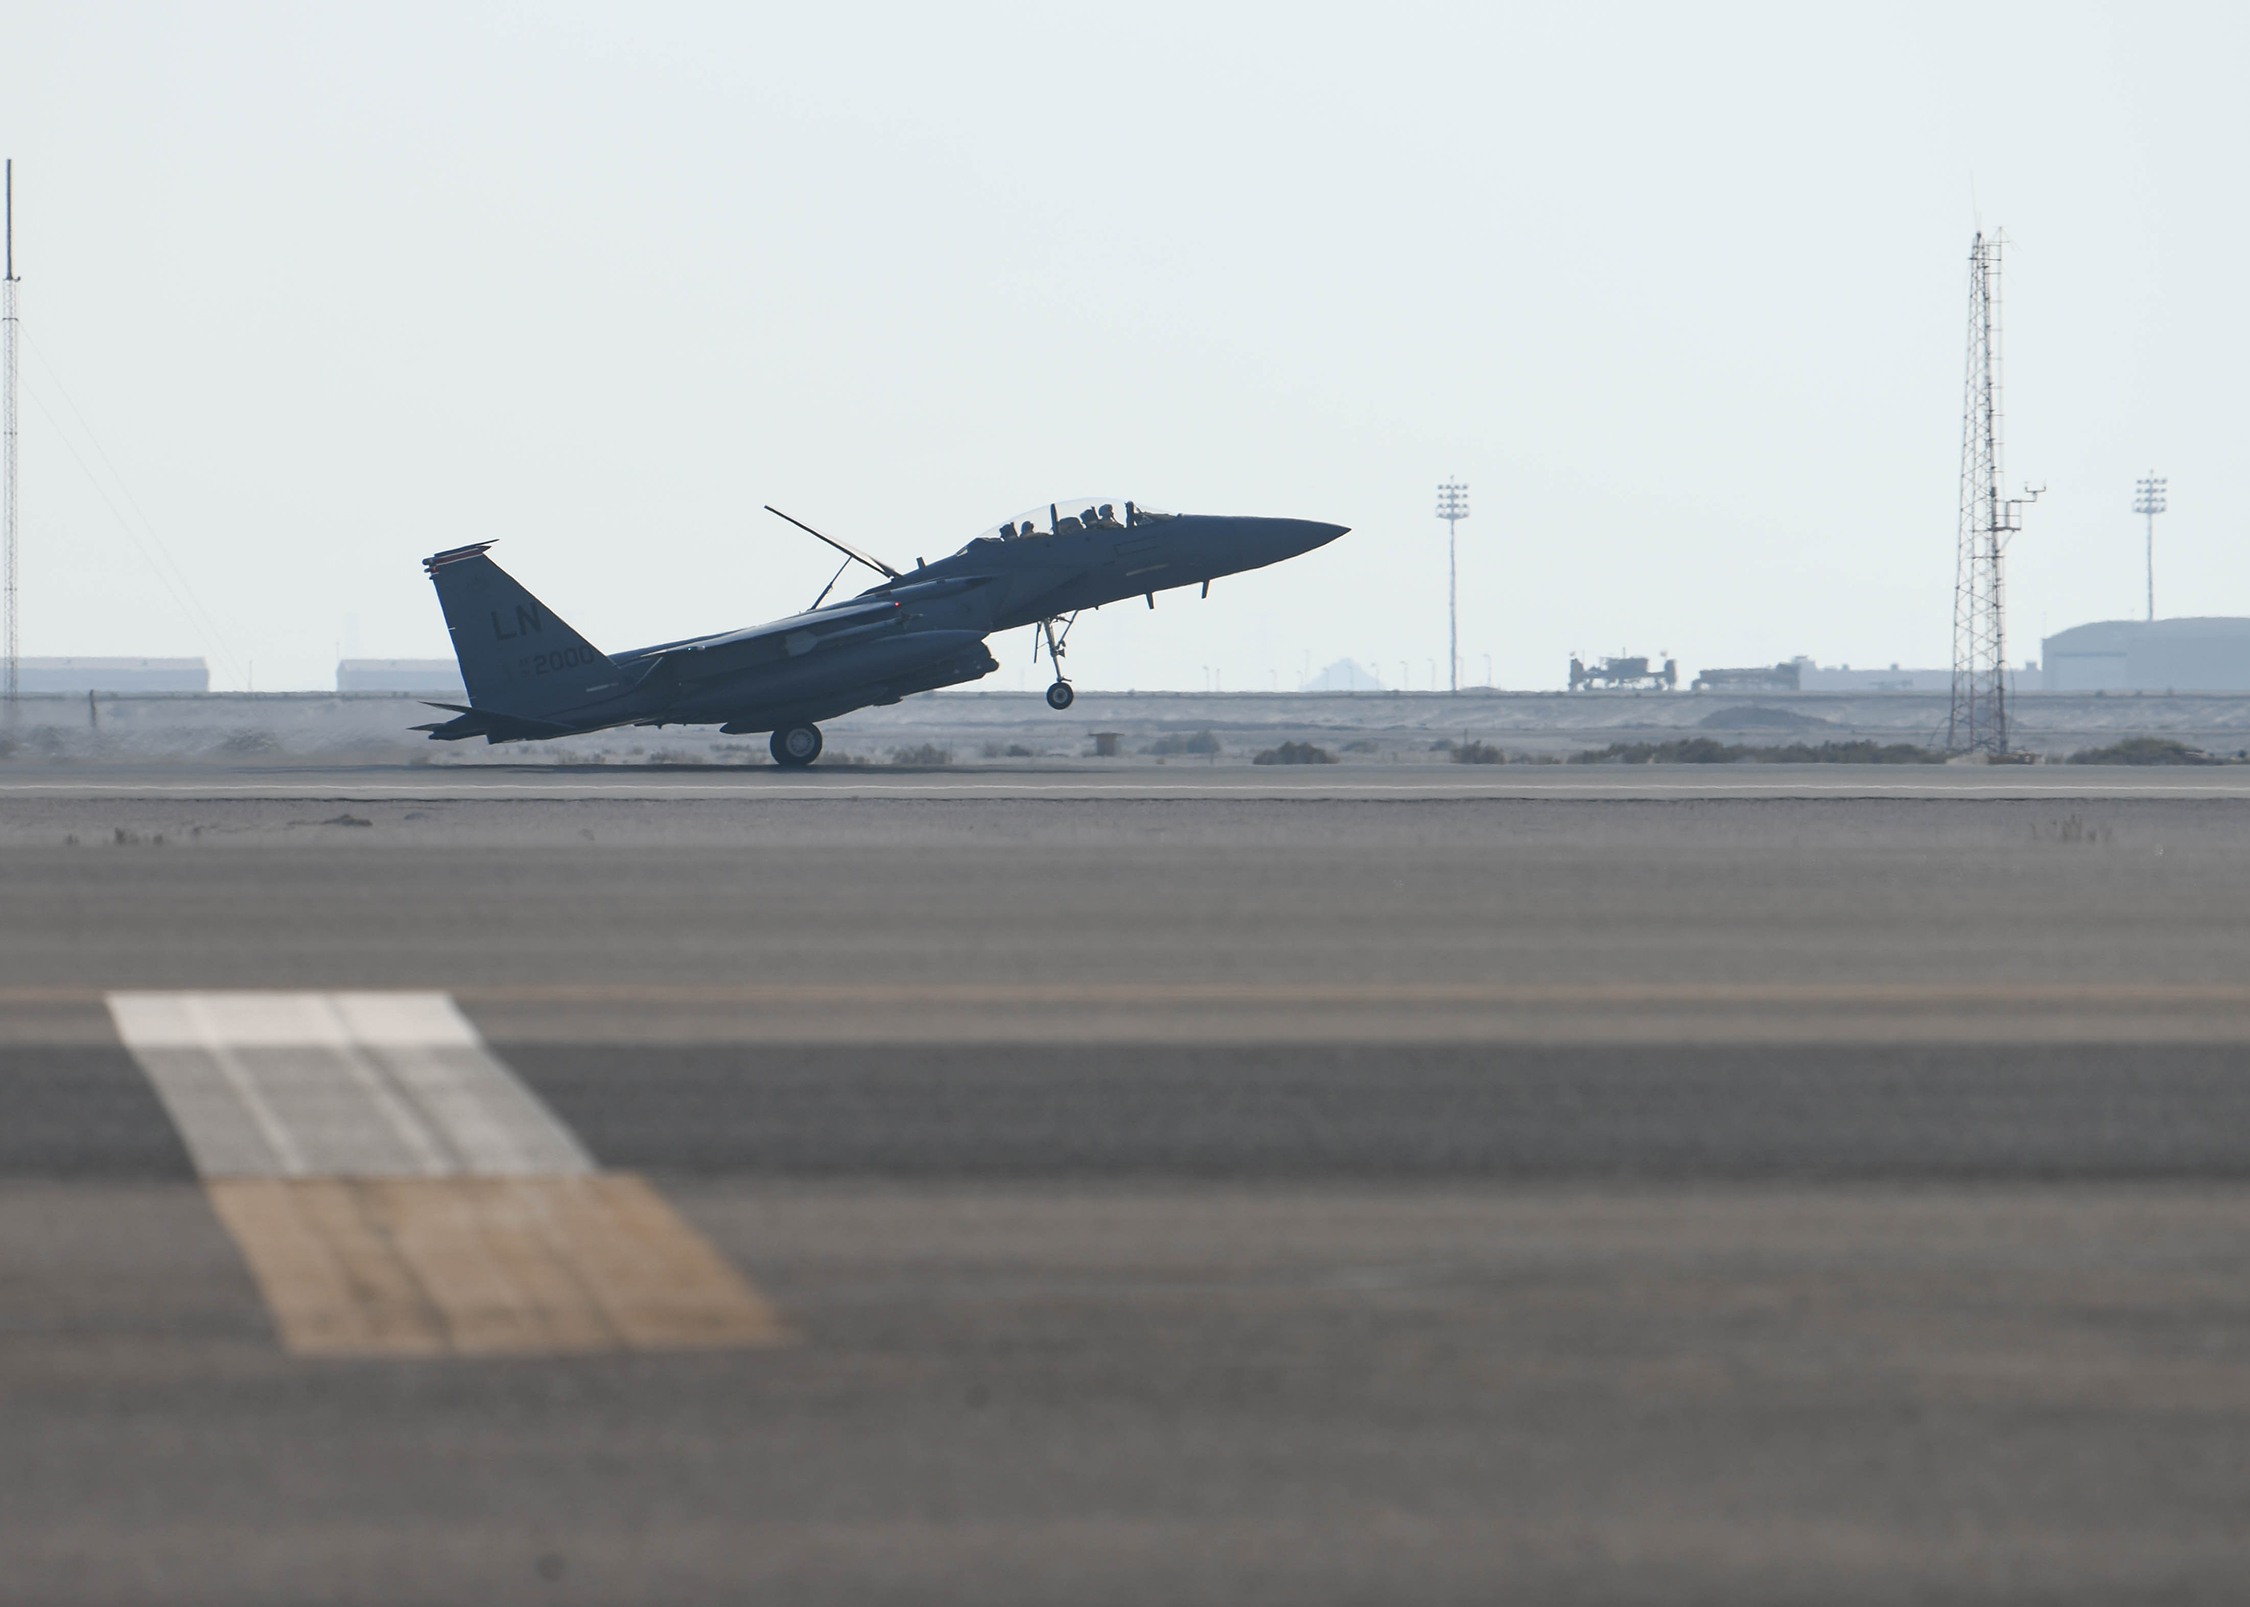 """An F-15E Strike Eagle from the 494th Fighter Squadron lands at Al Dhafra Air Base, United Arab Emirates, Oct. 18. The 494th Fighter Squadron """"Panthers"""" deployed to the Middle East to support ongoing operations to maintain air superiority, defend forces on the ground, enhance regional partnerships, and demonstrate a continued commitment to regional security and stability, the Air Force said. (Staff Sgt. Anna-kay Ellis/Air Force)"""